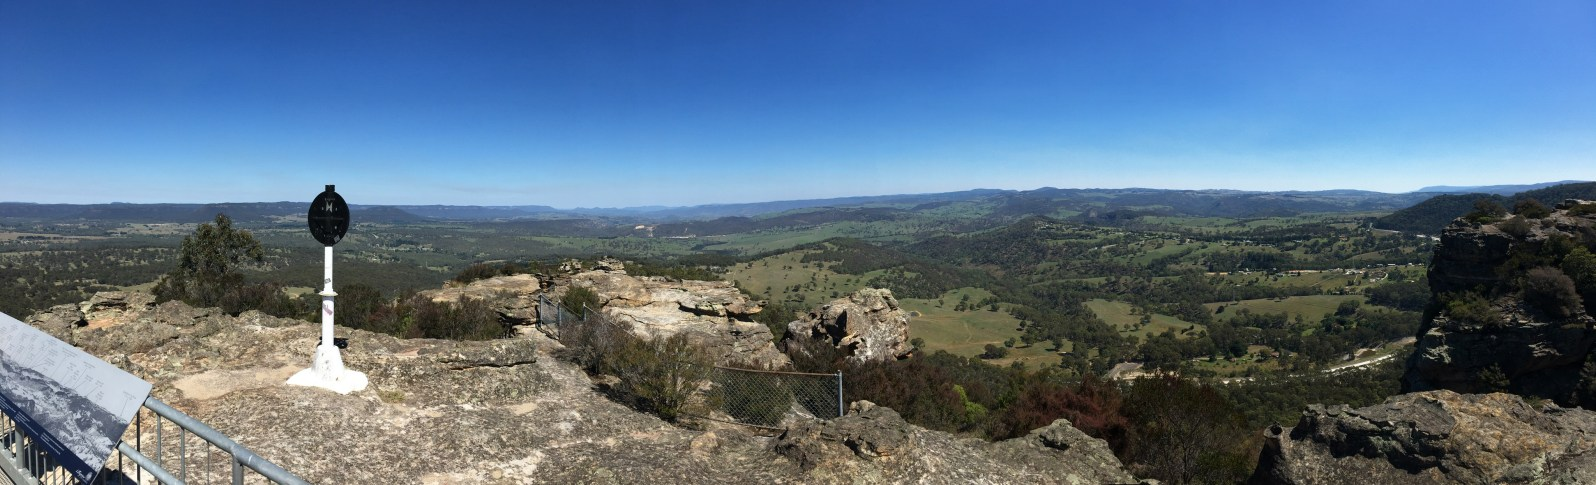 Hassan's Walls Lookout, Lithgow. Image by Jade Jackson.